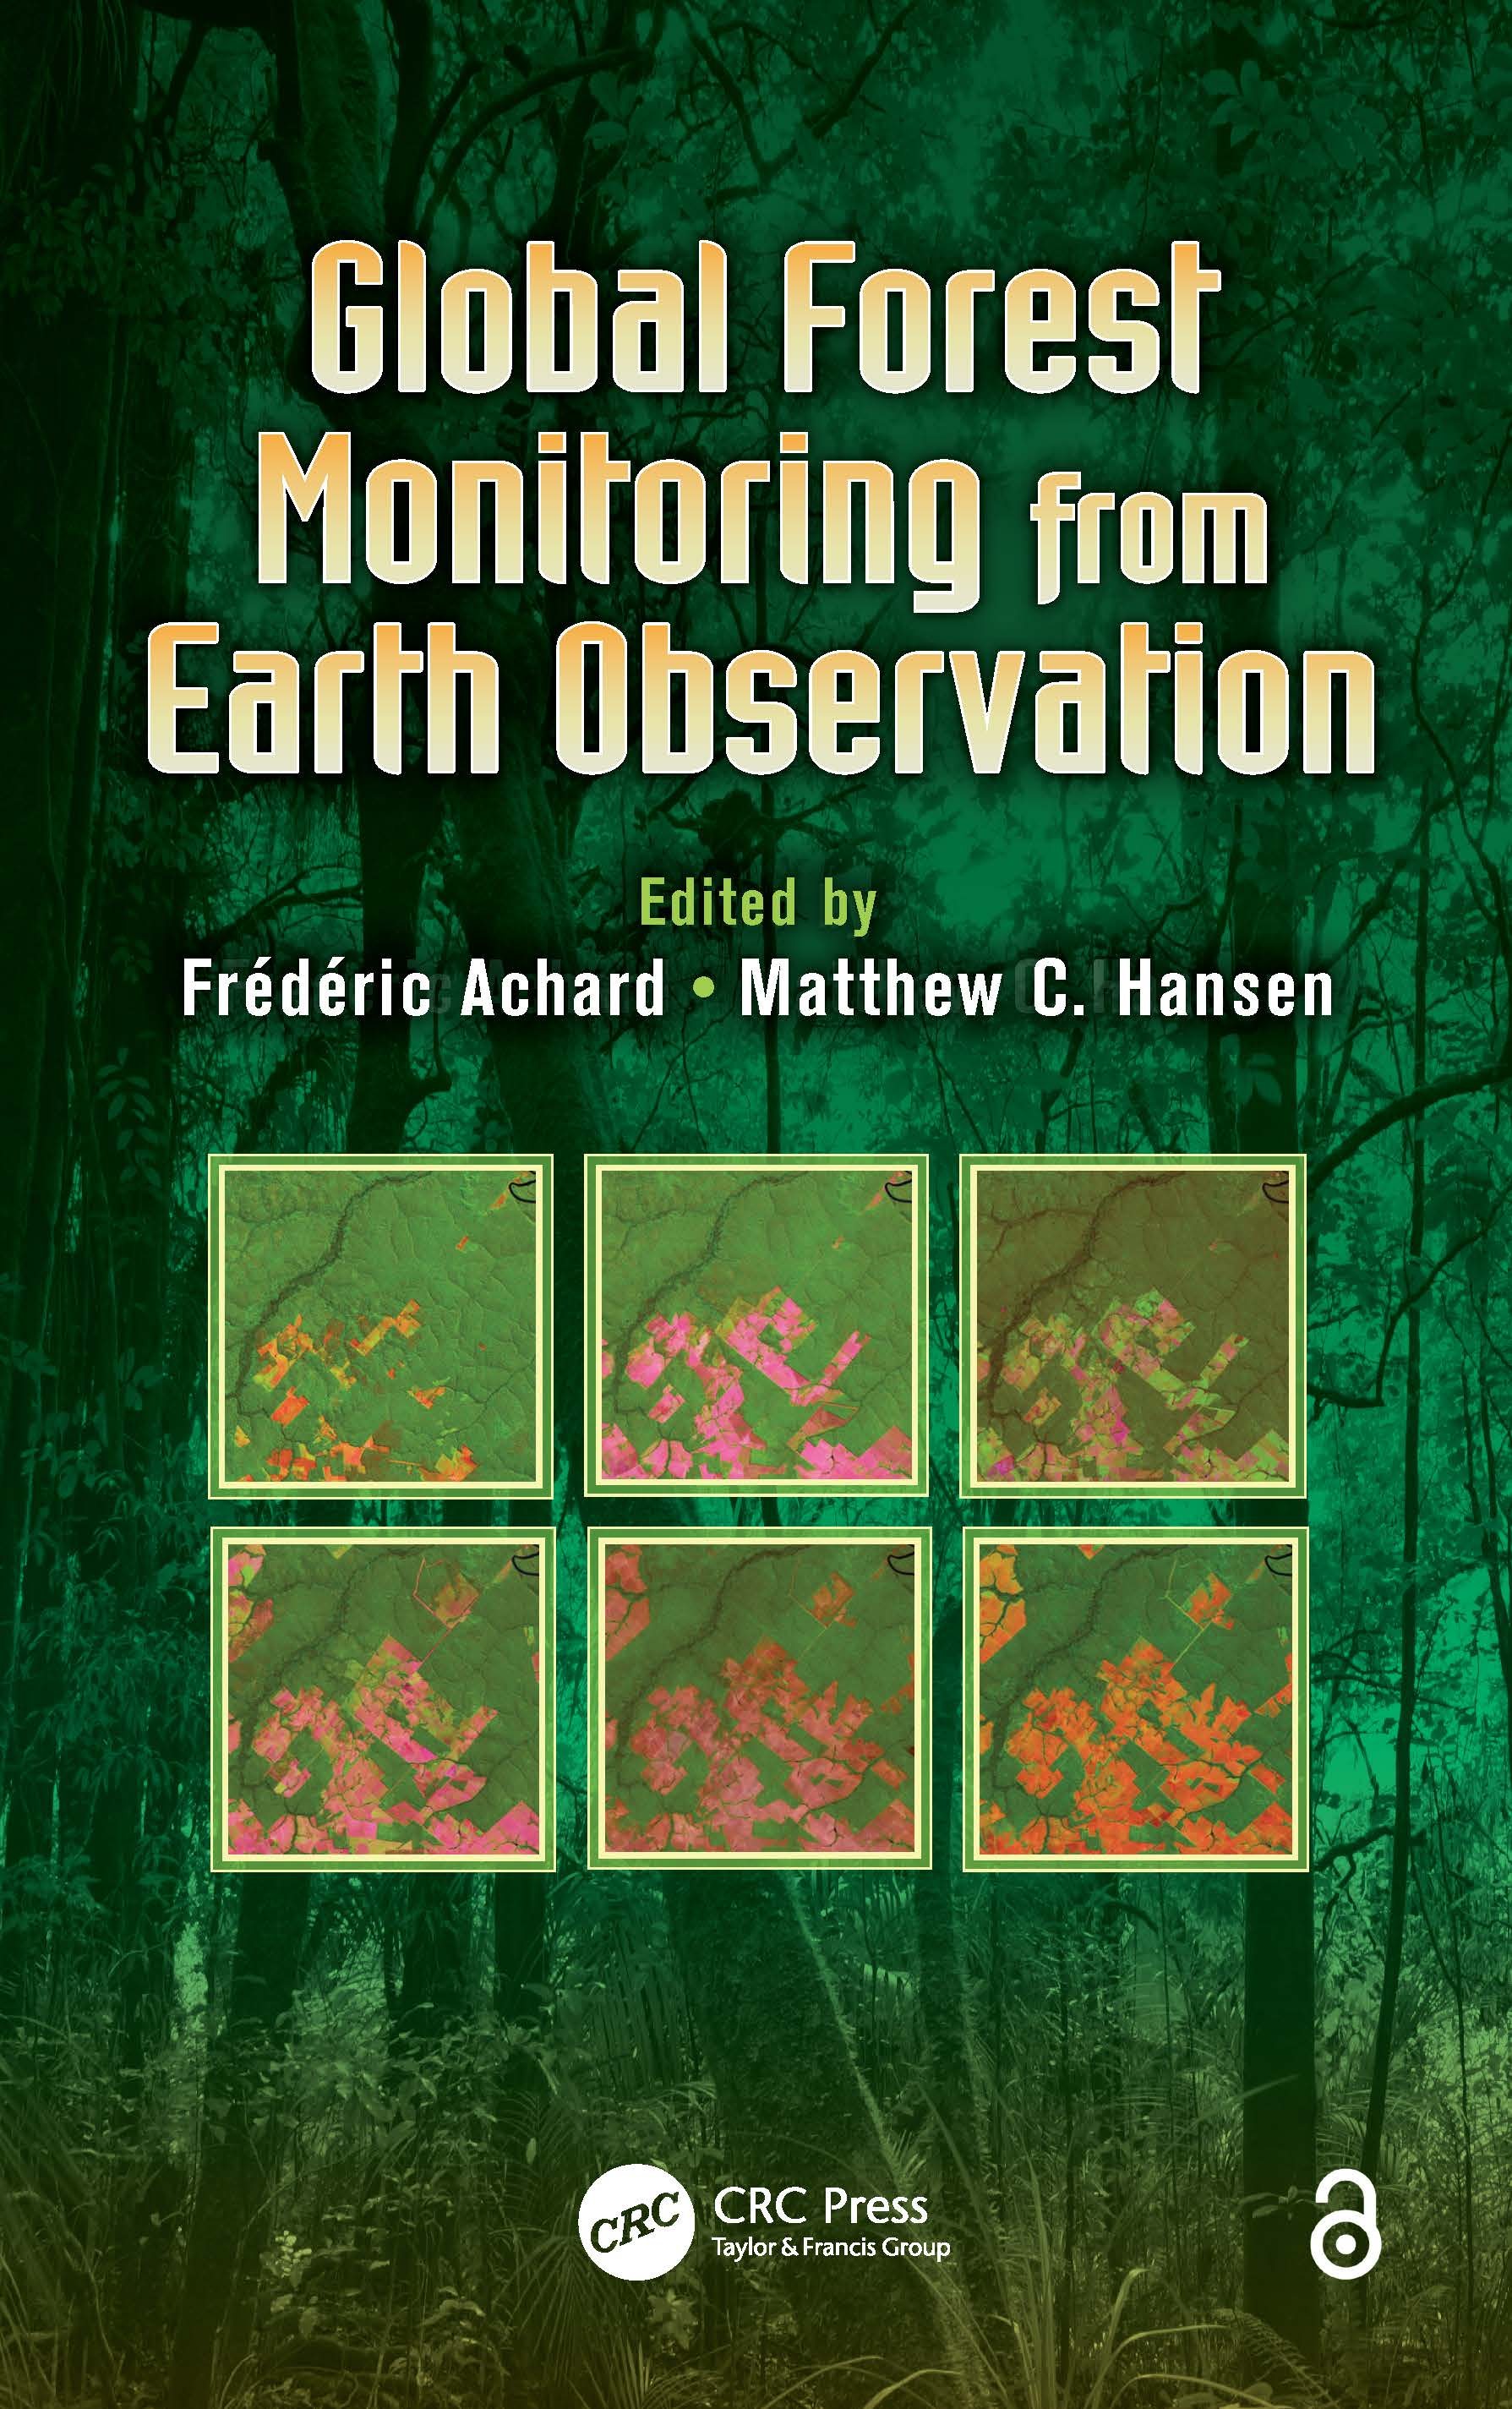 Global Forest Monitoring from Earth Observation book cover